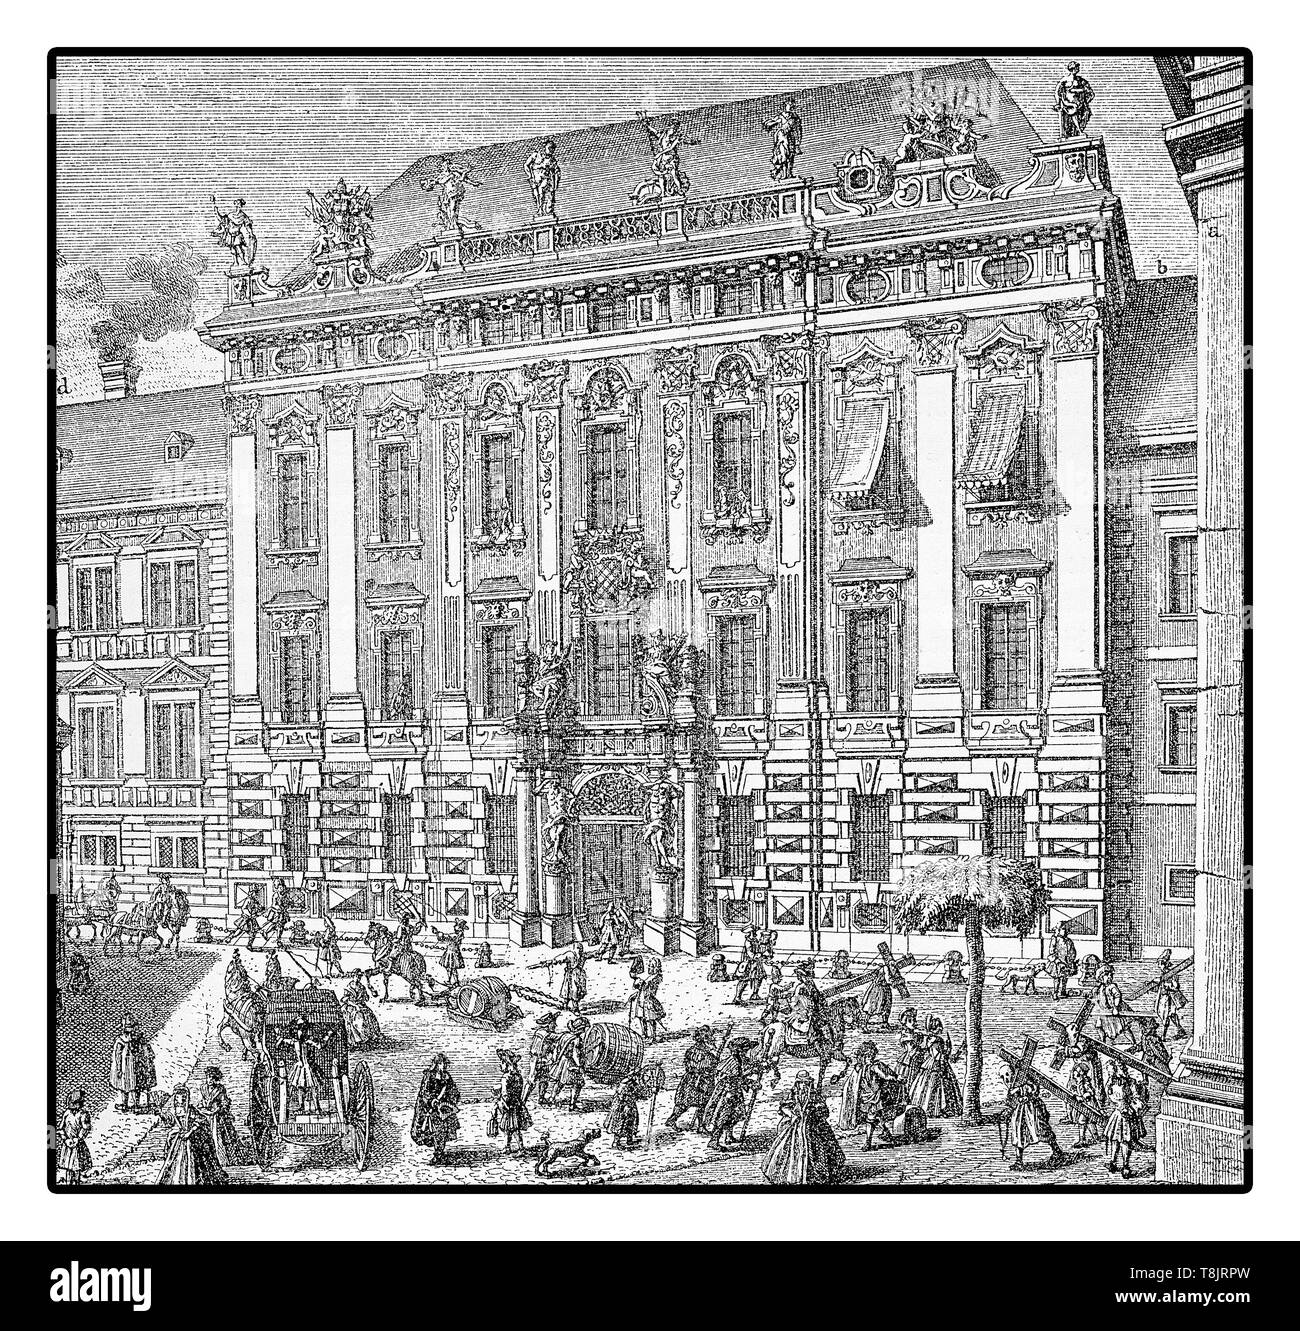 Street scene in Vienna 1733 : Daunschen palace facade at the Freyung square - Stock Image